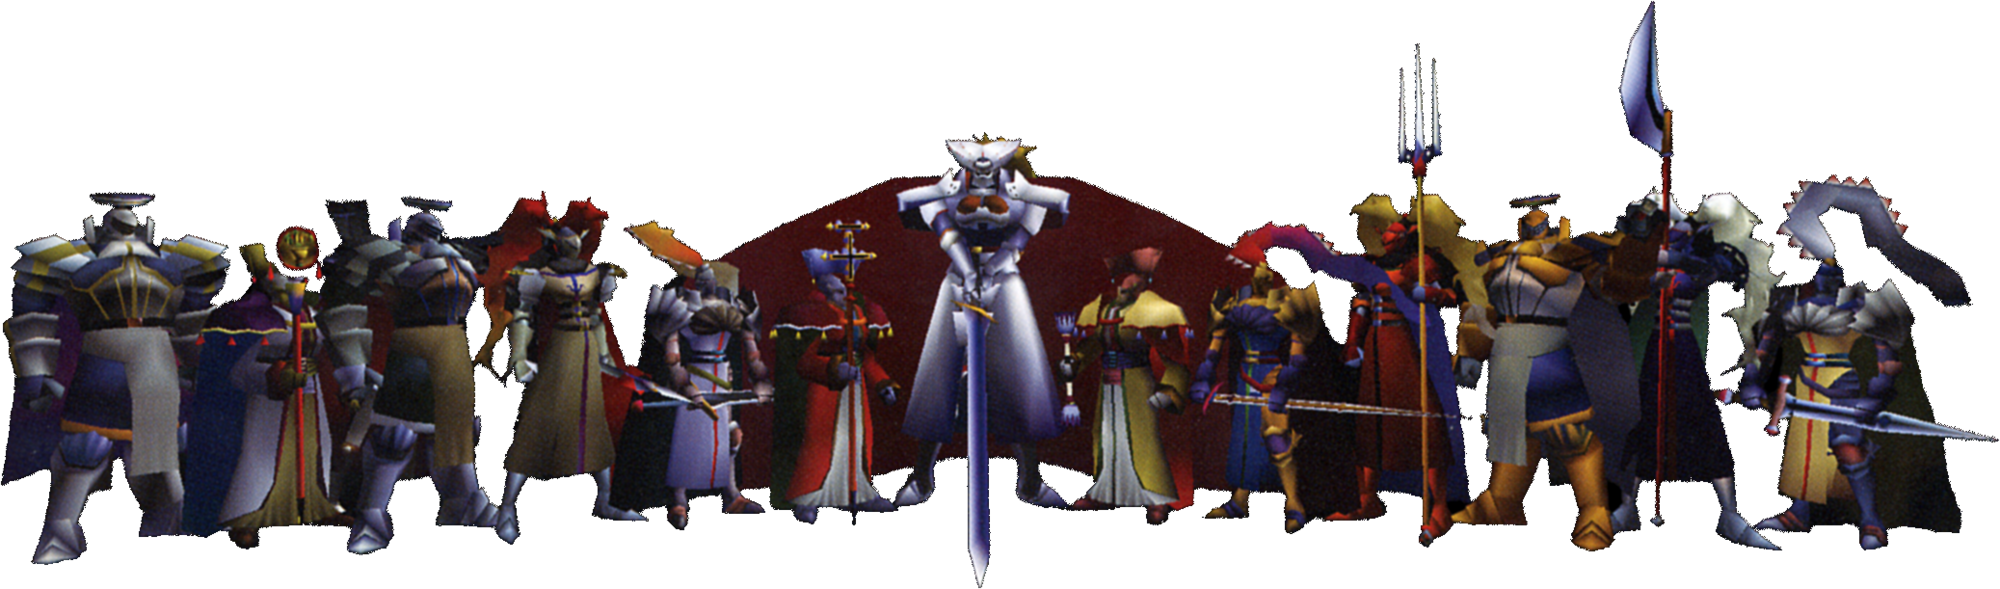 Knights Of The Round Table Sword Names.Knights Of The Round Summon Final Fantasy Wiki Fandom Powered